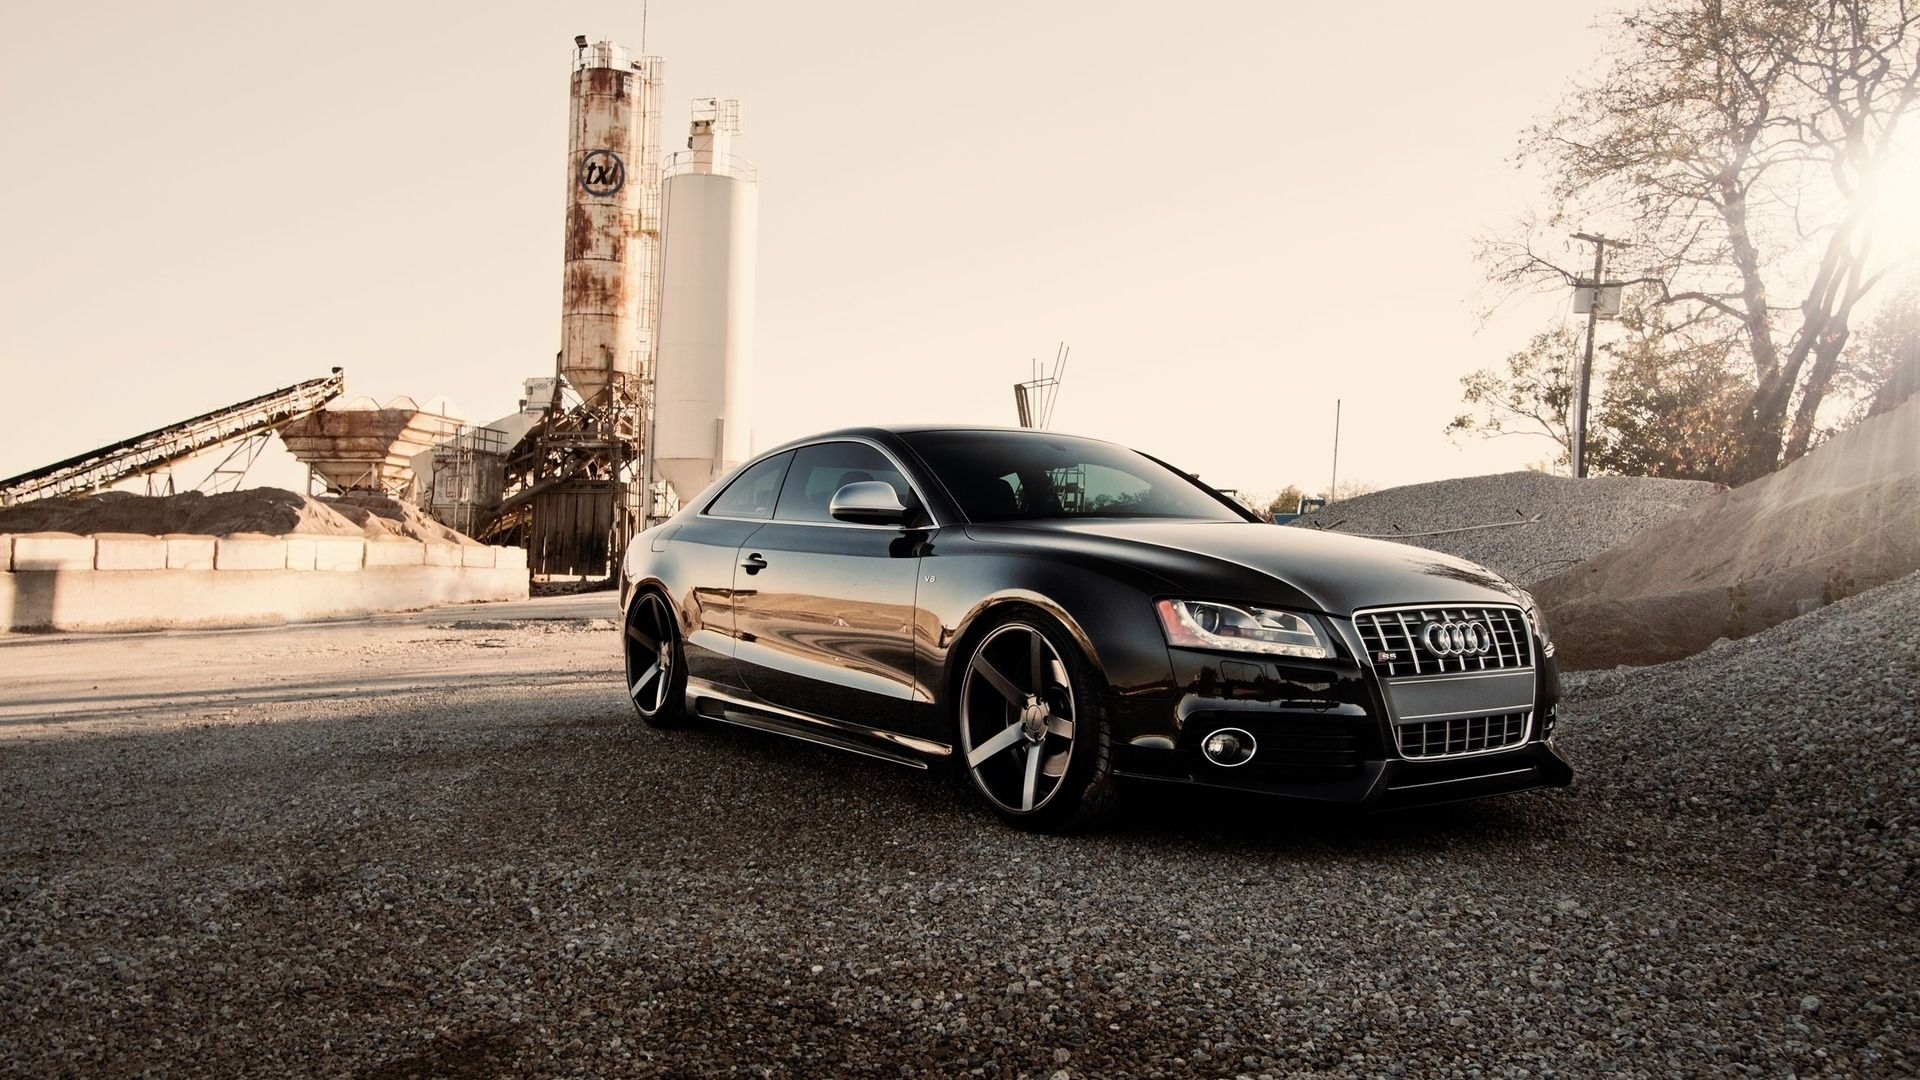 Cool Audi S5 Wallpapers Picture Audi S5 Black Audi Audi Cars